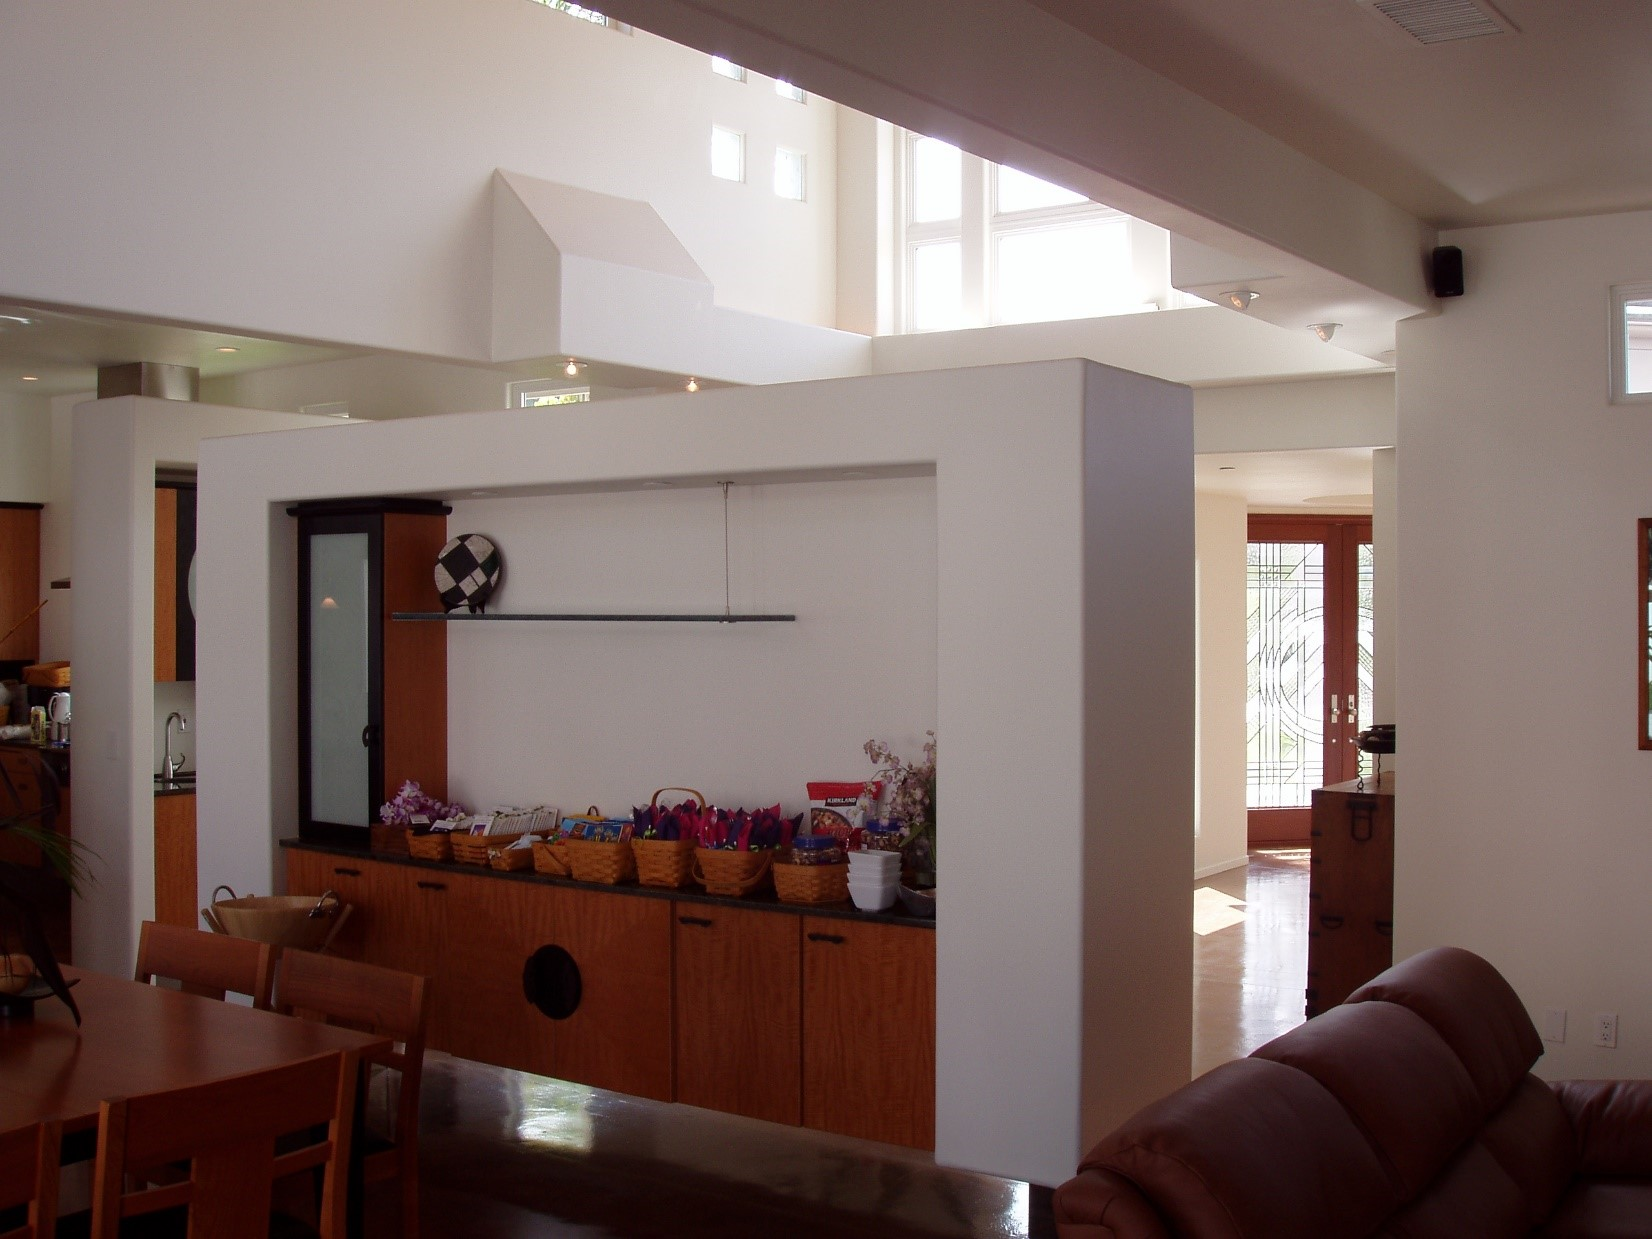 The Great Room side of the Floating Wall containing storage and a small buffet platform serving the dining room table.The Foyer and entry doors can be seen to the right, beyond.